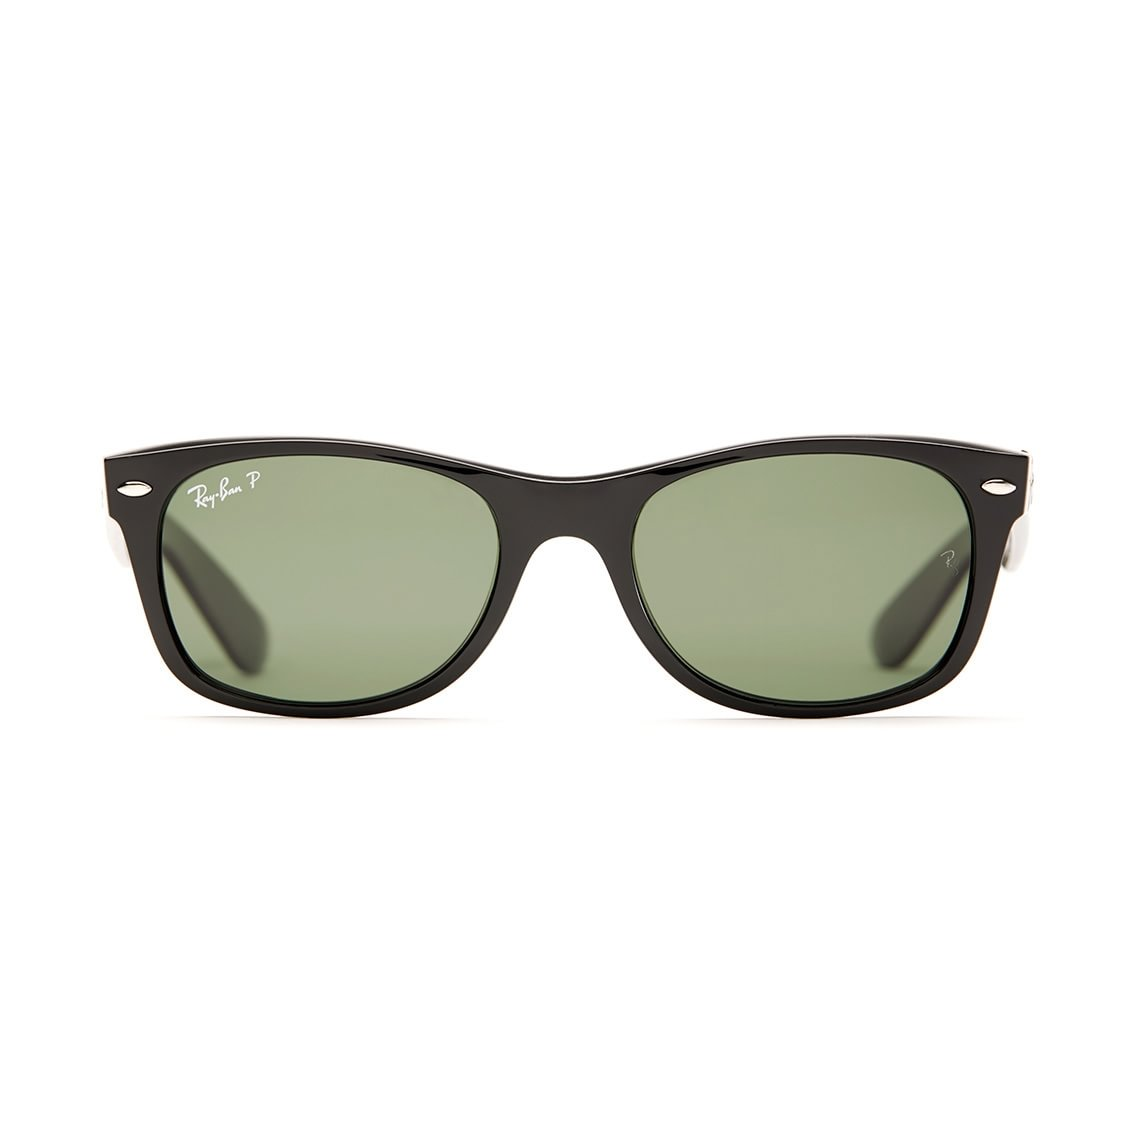 Ray-Ban New Wayfarer RB2132 901/58 52